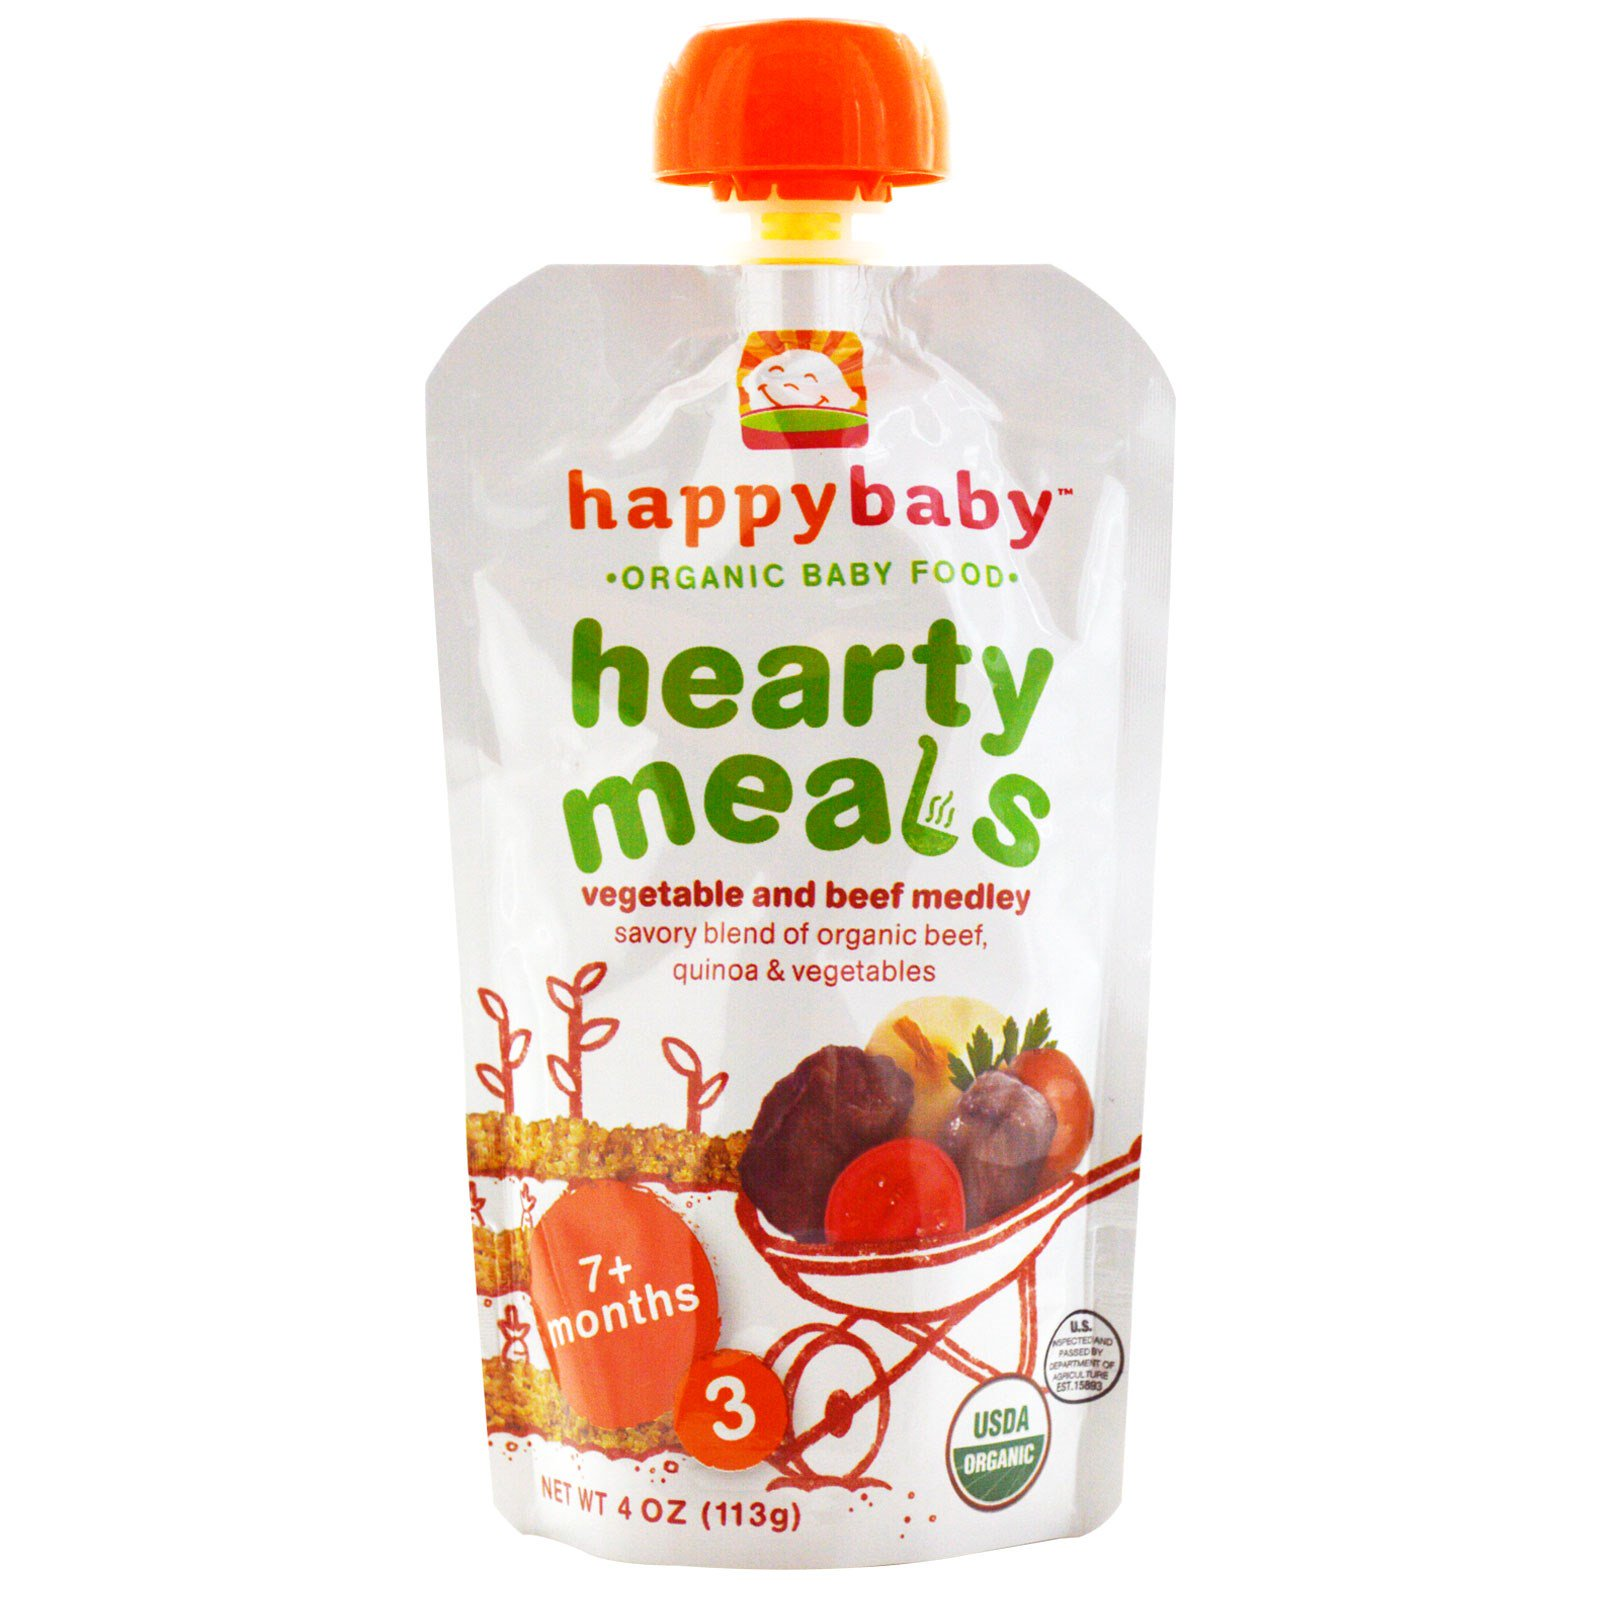 Nurture Inc. (Happy Baby), Organic Baby Food, Hearty Meals, Vegetable and Beef Medley, 7+ Months, Stage 3, 4 oz (pack of 6)